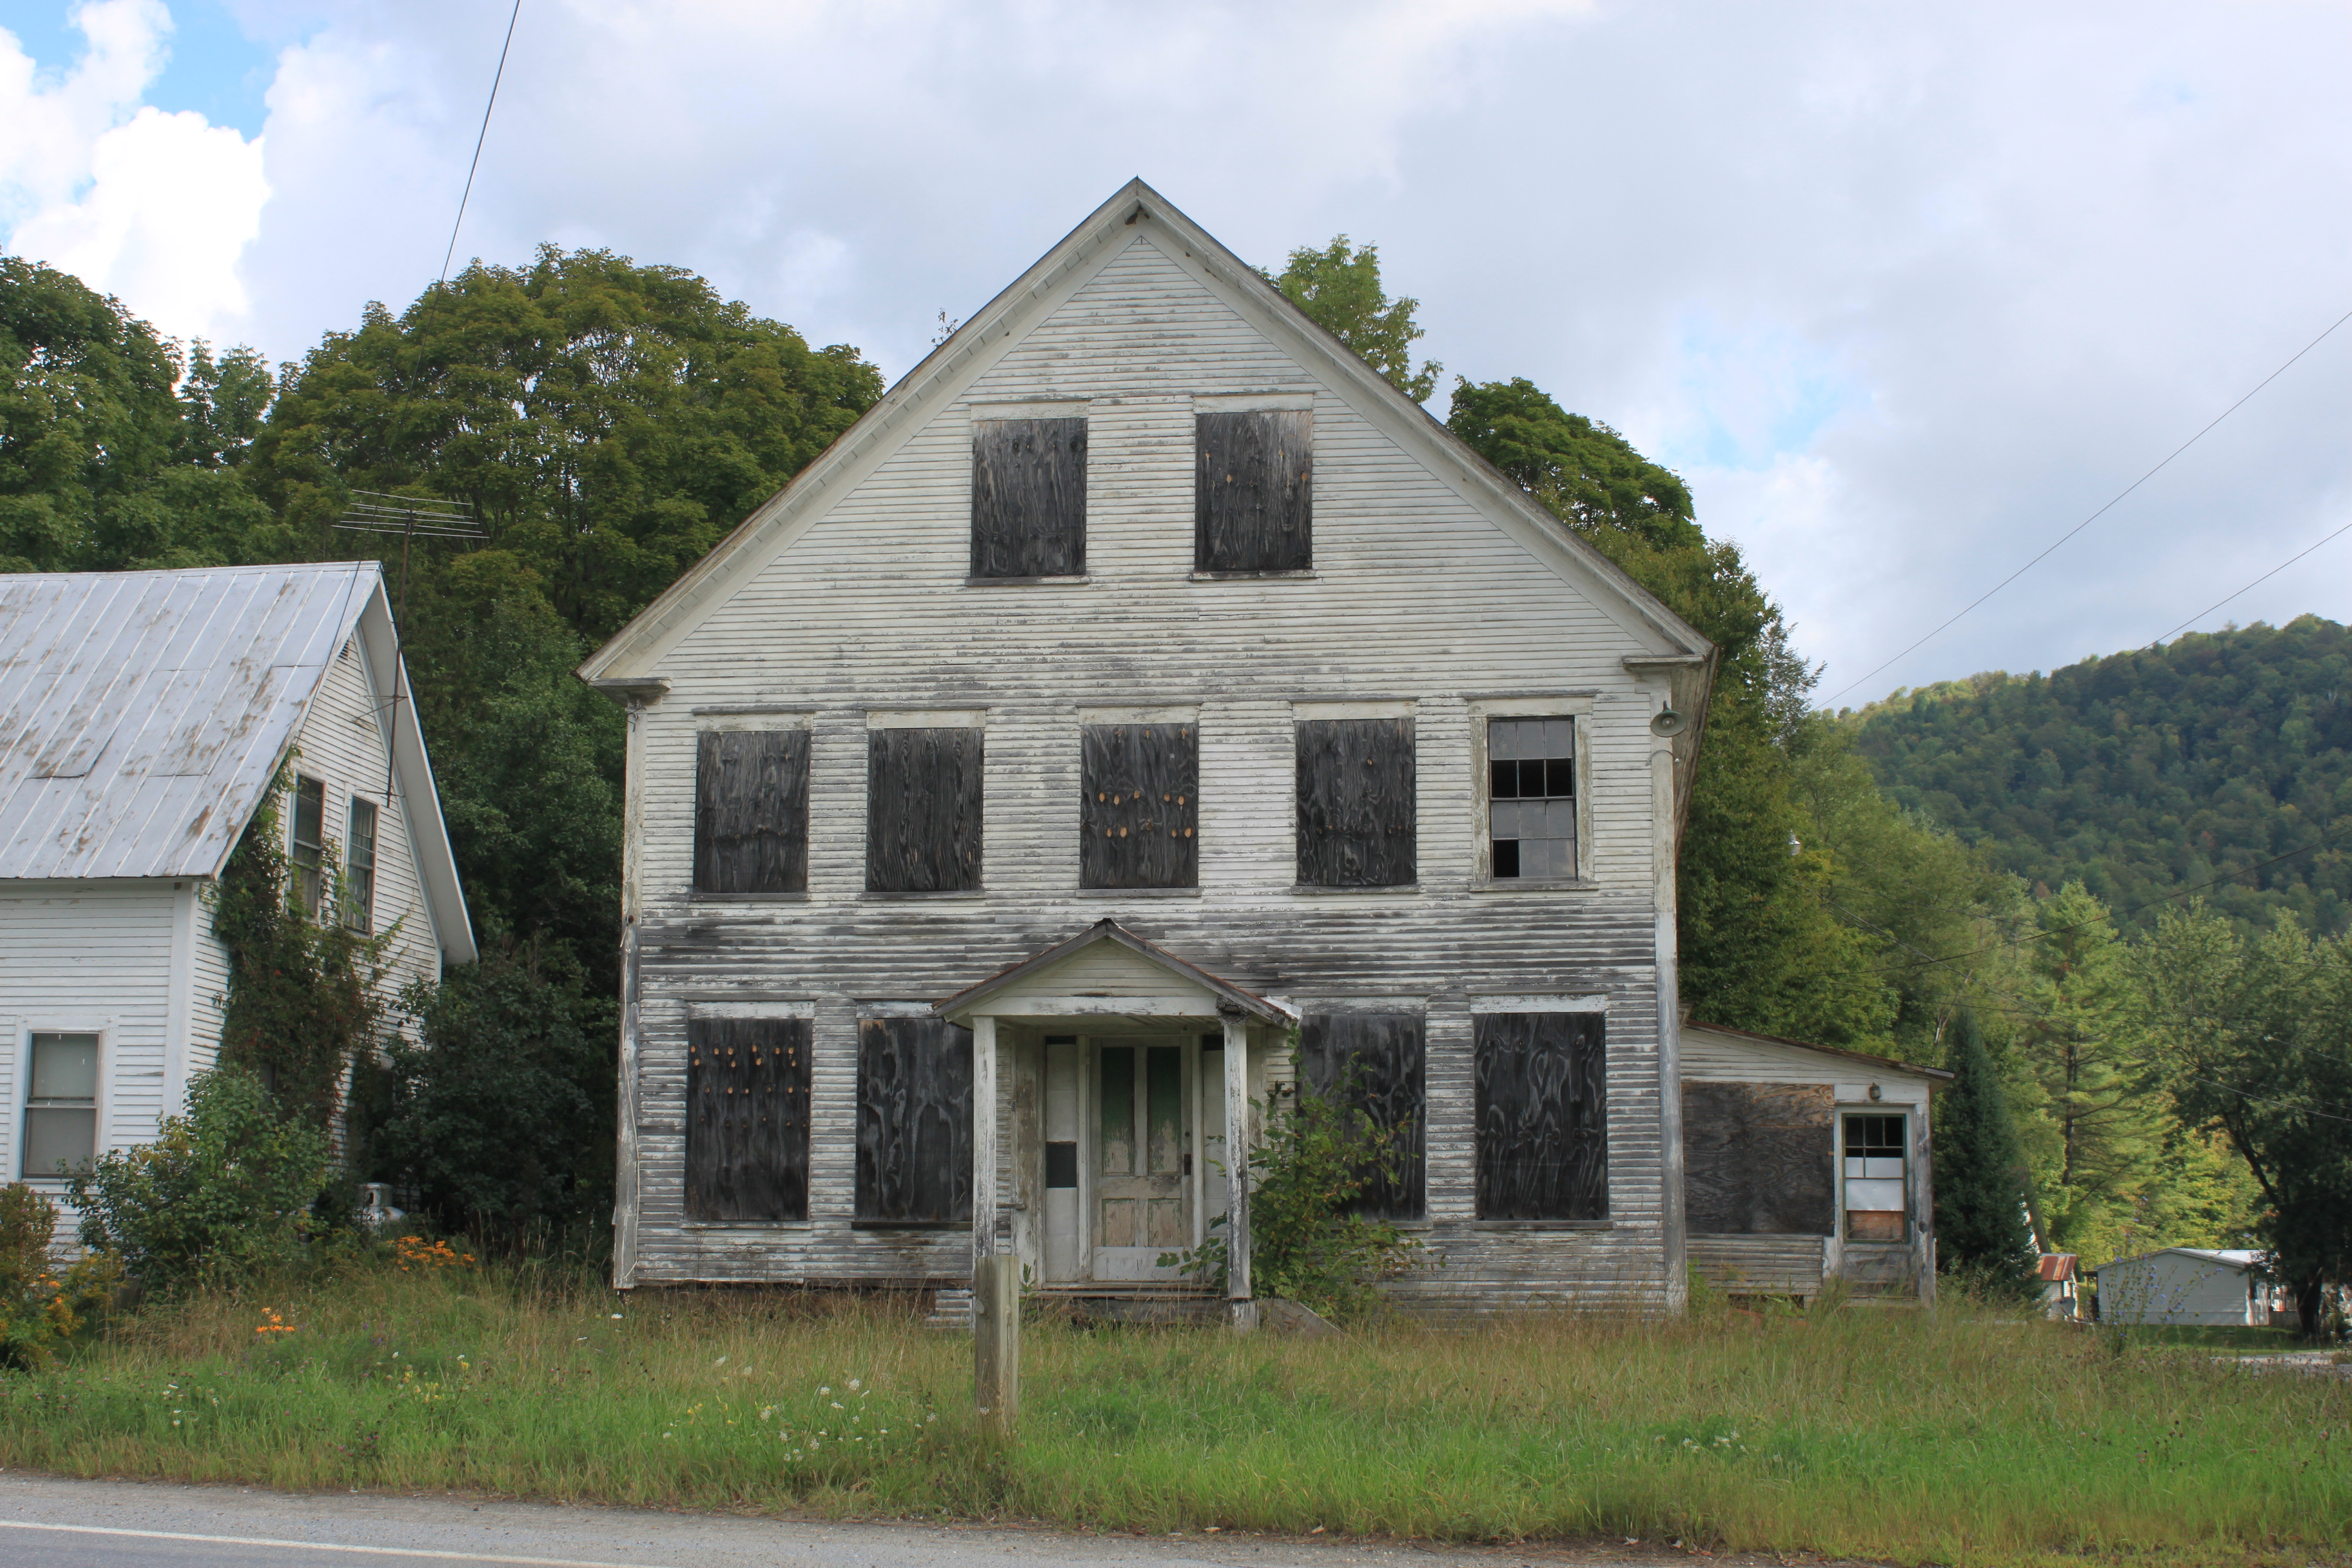 Abandoned Vermont Granville Inn Preservation In Pink